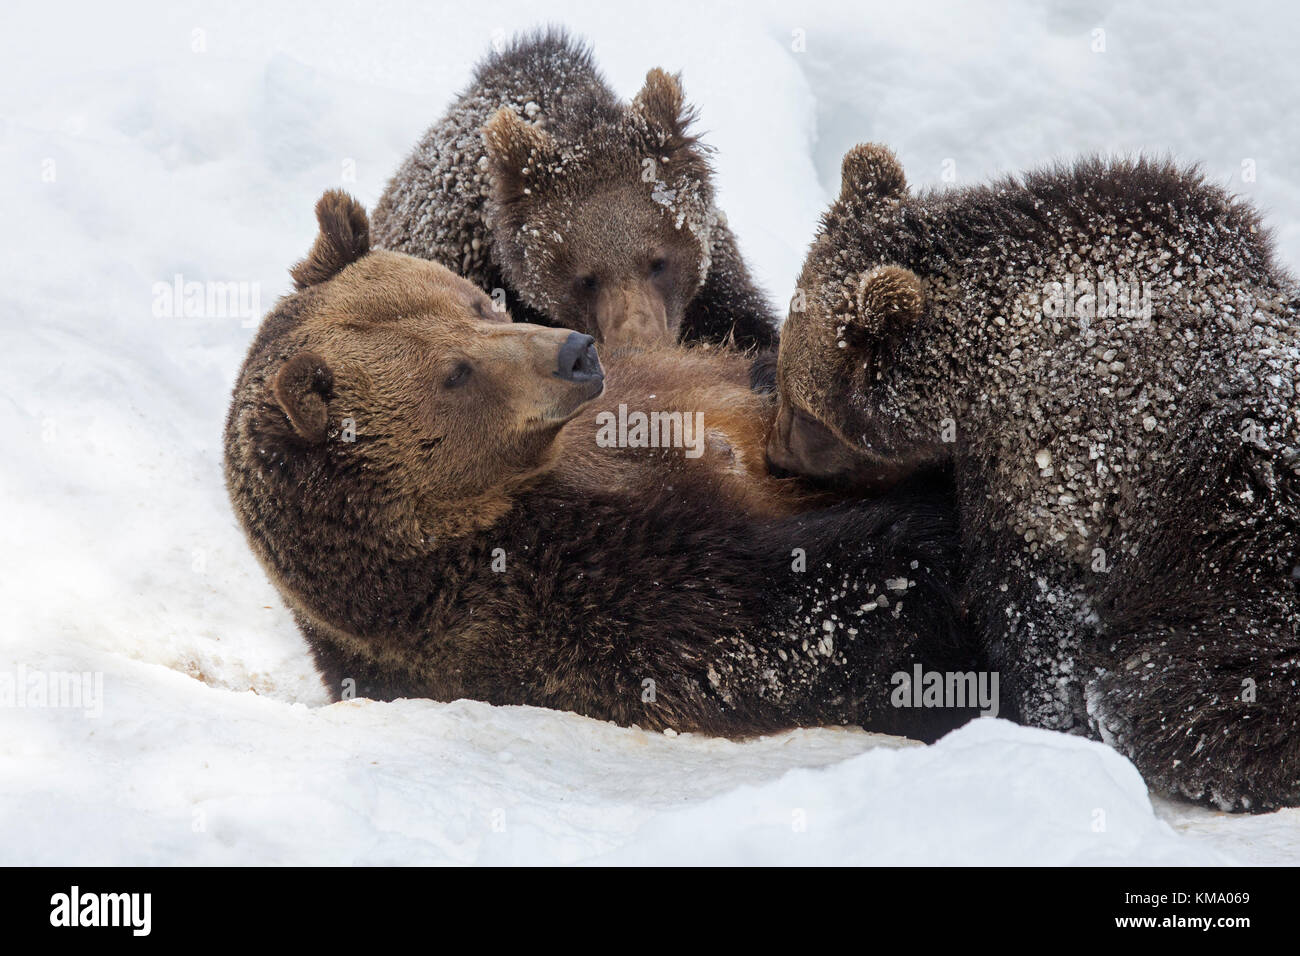 Female brown bear suckling two 1-year-old cubs (Ursus arctos arctos) in the snow in winter - Stock Image